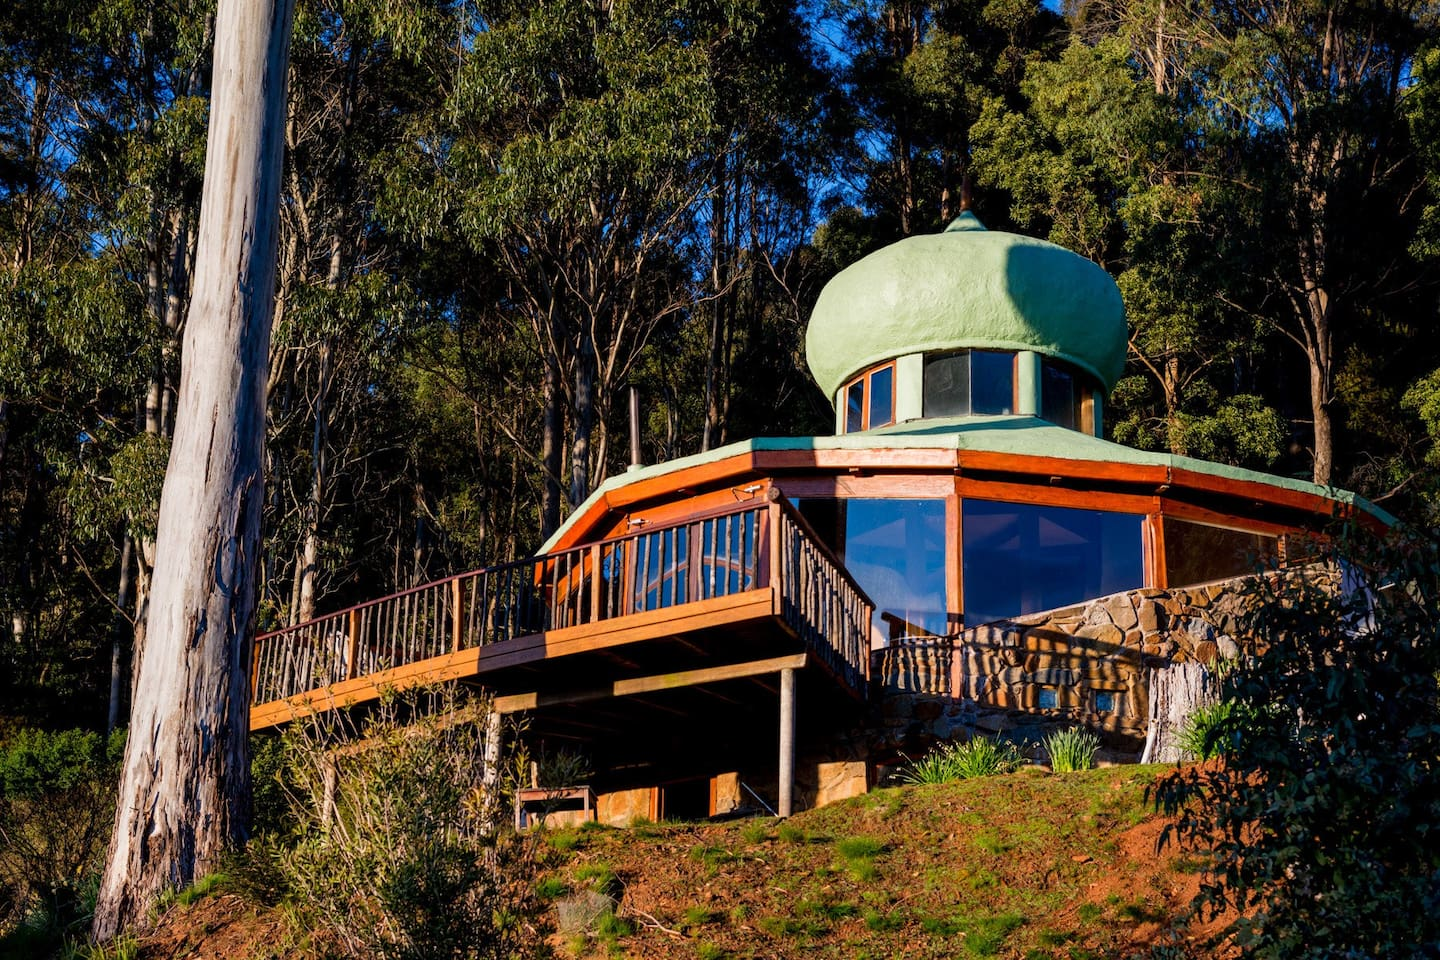 The Roundhouse sits on the side of Warner's Sugarloaf with direct views of Quamby Bluff